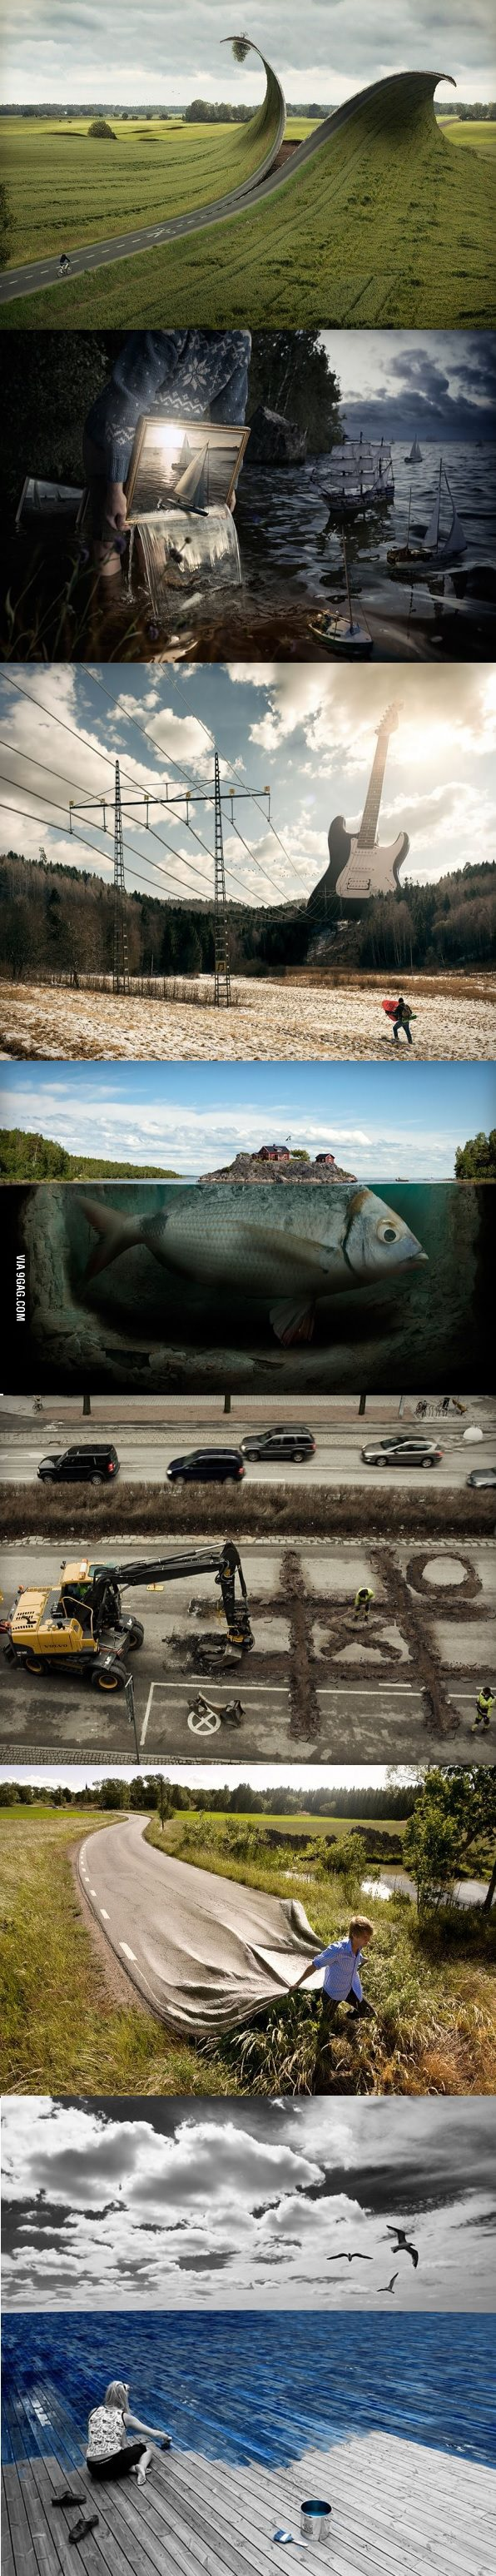 Photoshop Genius Erik Johansson.